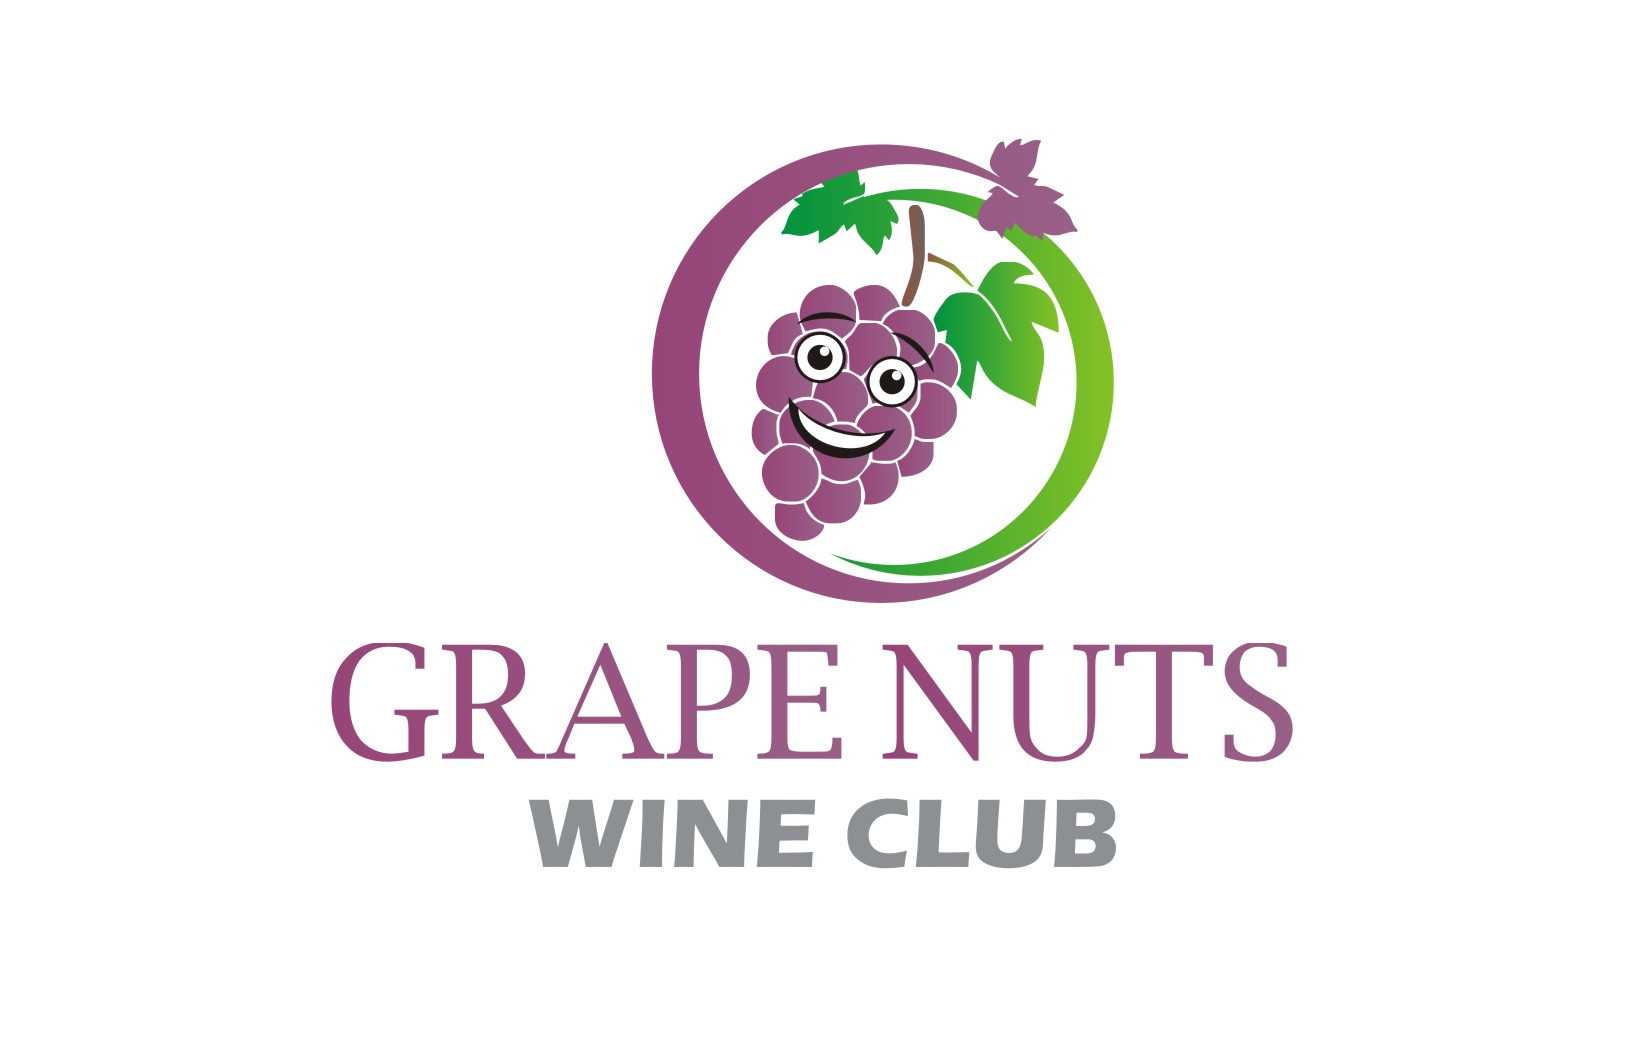 Logo Design by Yuda Hermawan - Entry No. 67 in the Logo Design Contest Artistic Logo Design for Grape Nuts Wine Club.